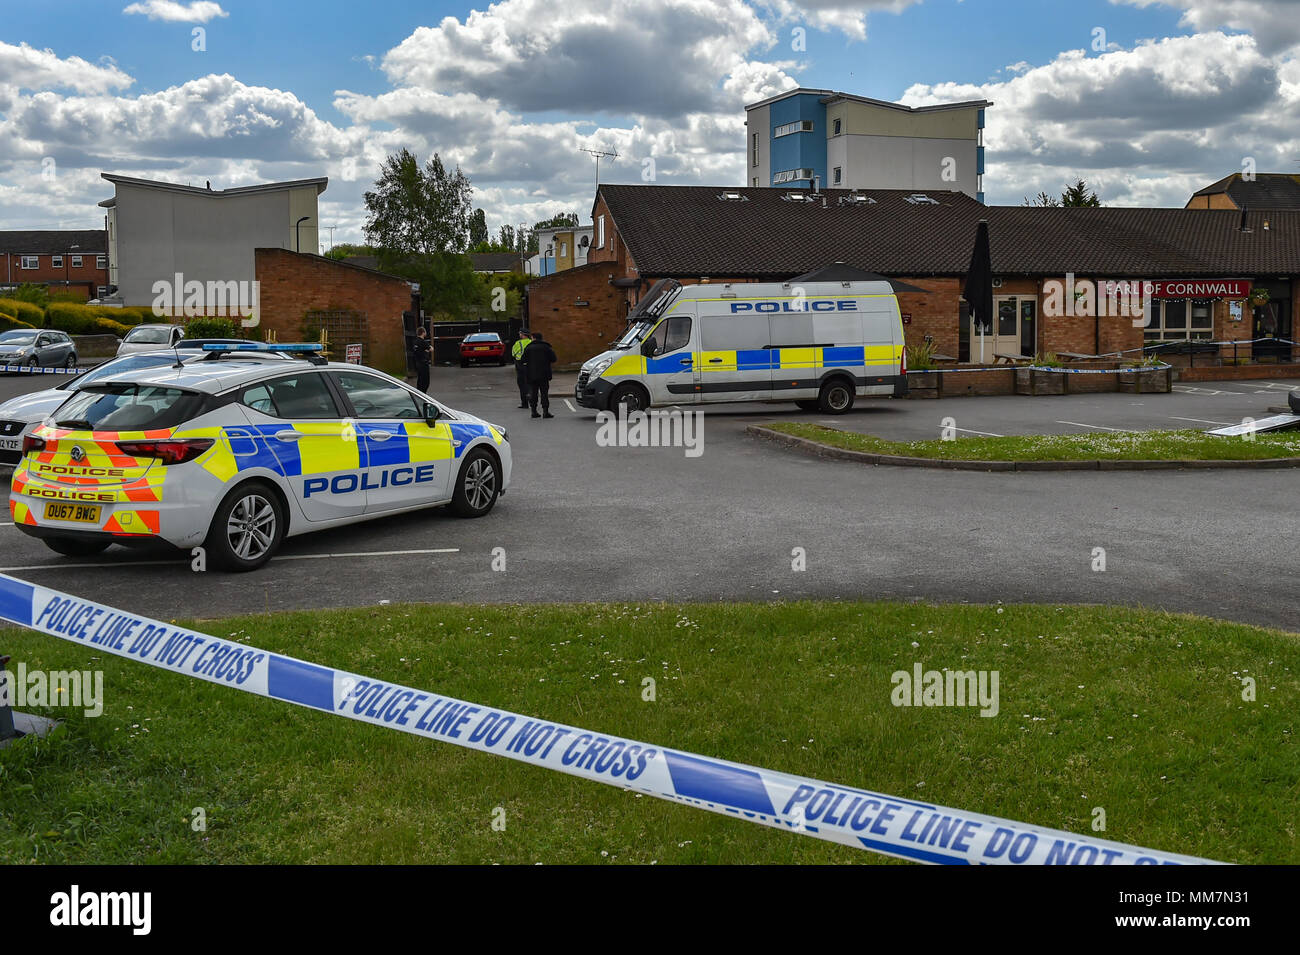 Slough, United Kingdom. 10th May 2018. A murder investigation has been launched after a man died following an incident in Slough. Police were called to The Earl of Cornwall Pub in Cippenham Lane at around 23:30 on 9th May 2018 to reports of a fight in progress. A 43-year-old man from Slough was taken to hospital with life-threatening injuries where he later died. Credit: Peter Manning/Alamy Live News Stock Photo